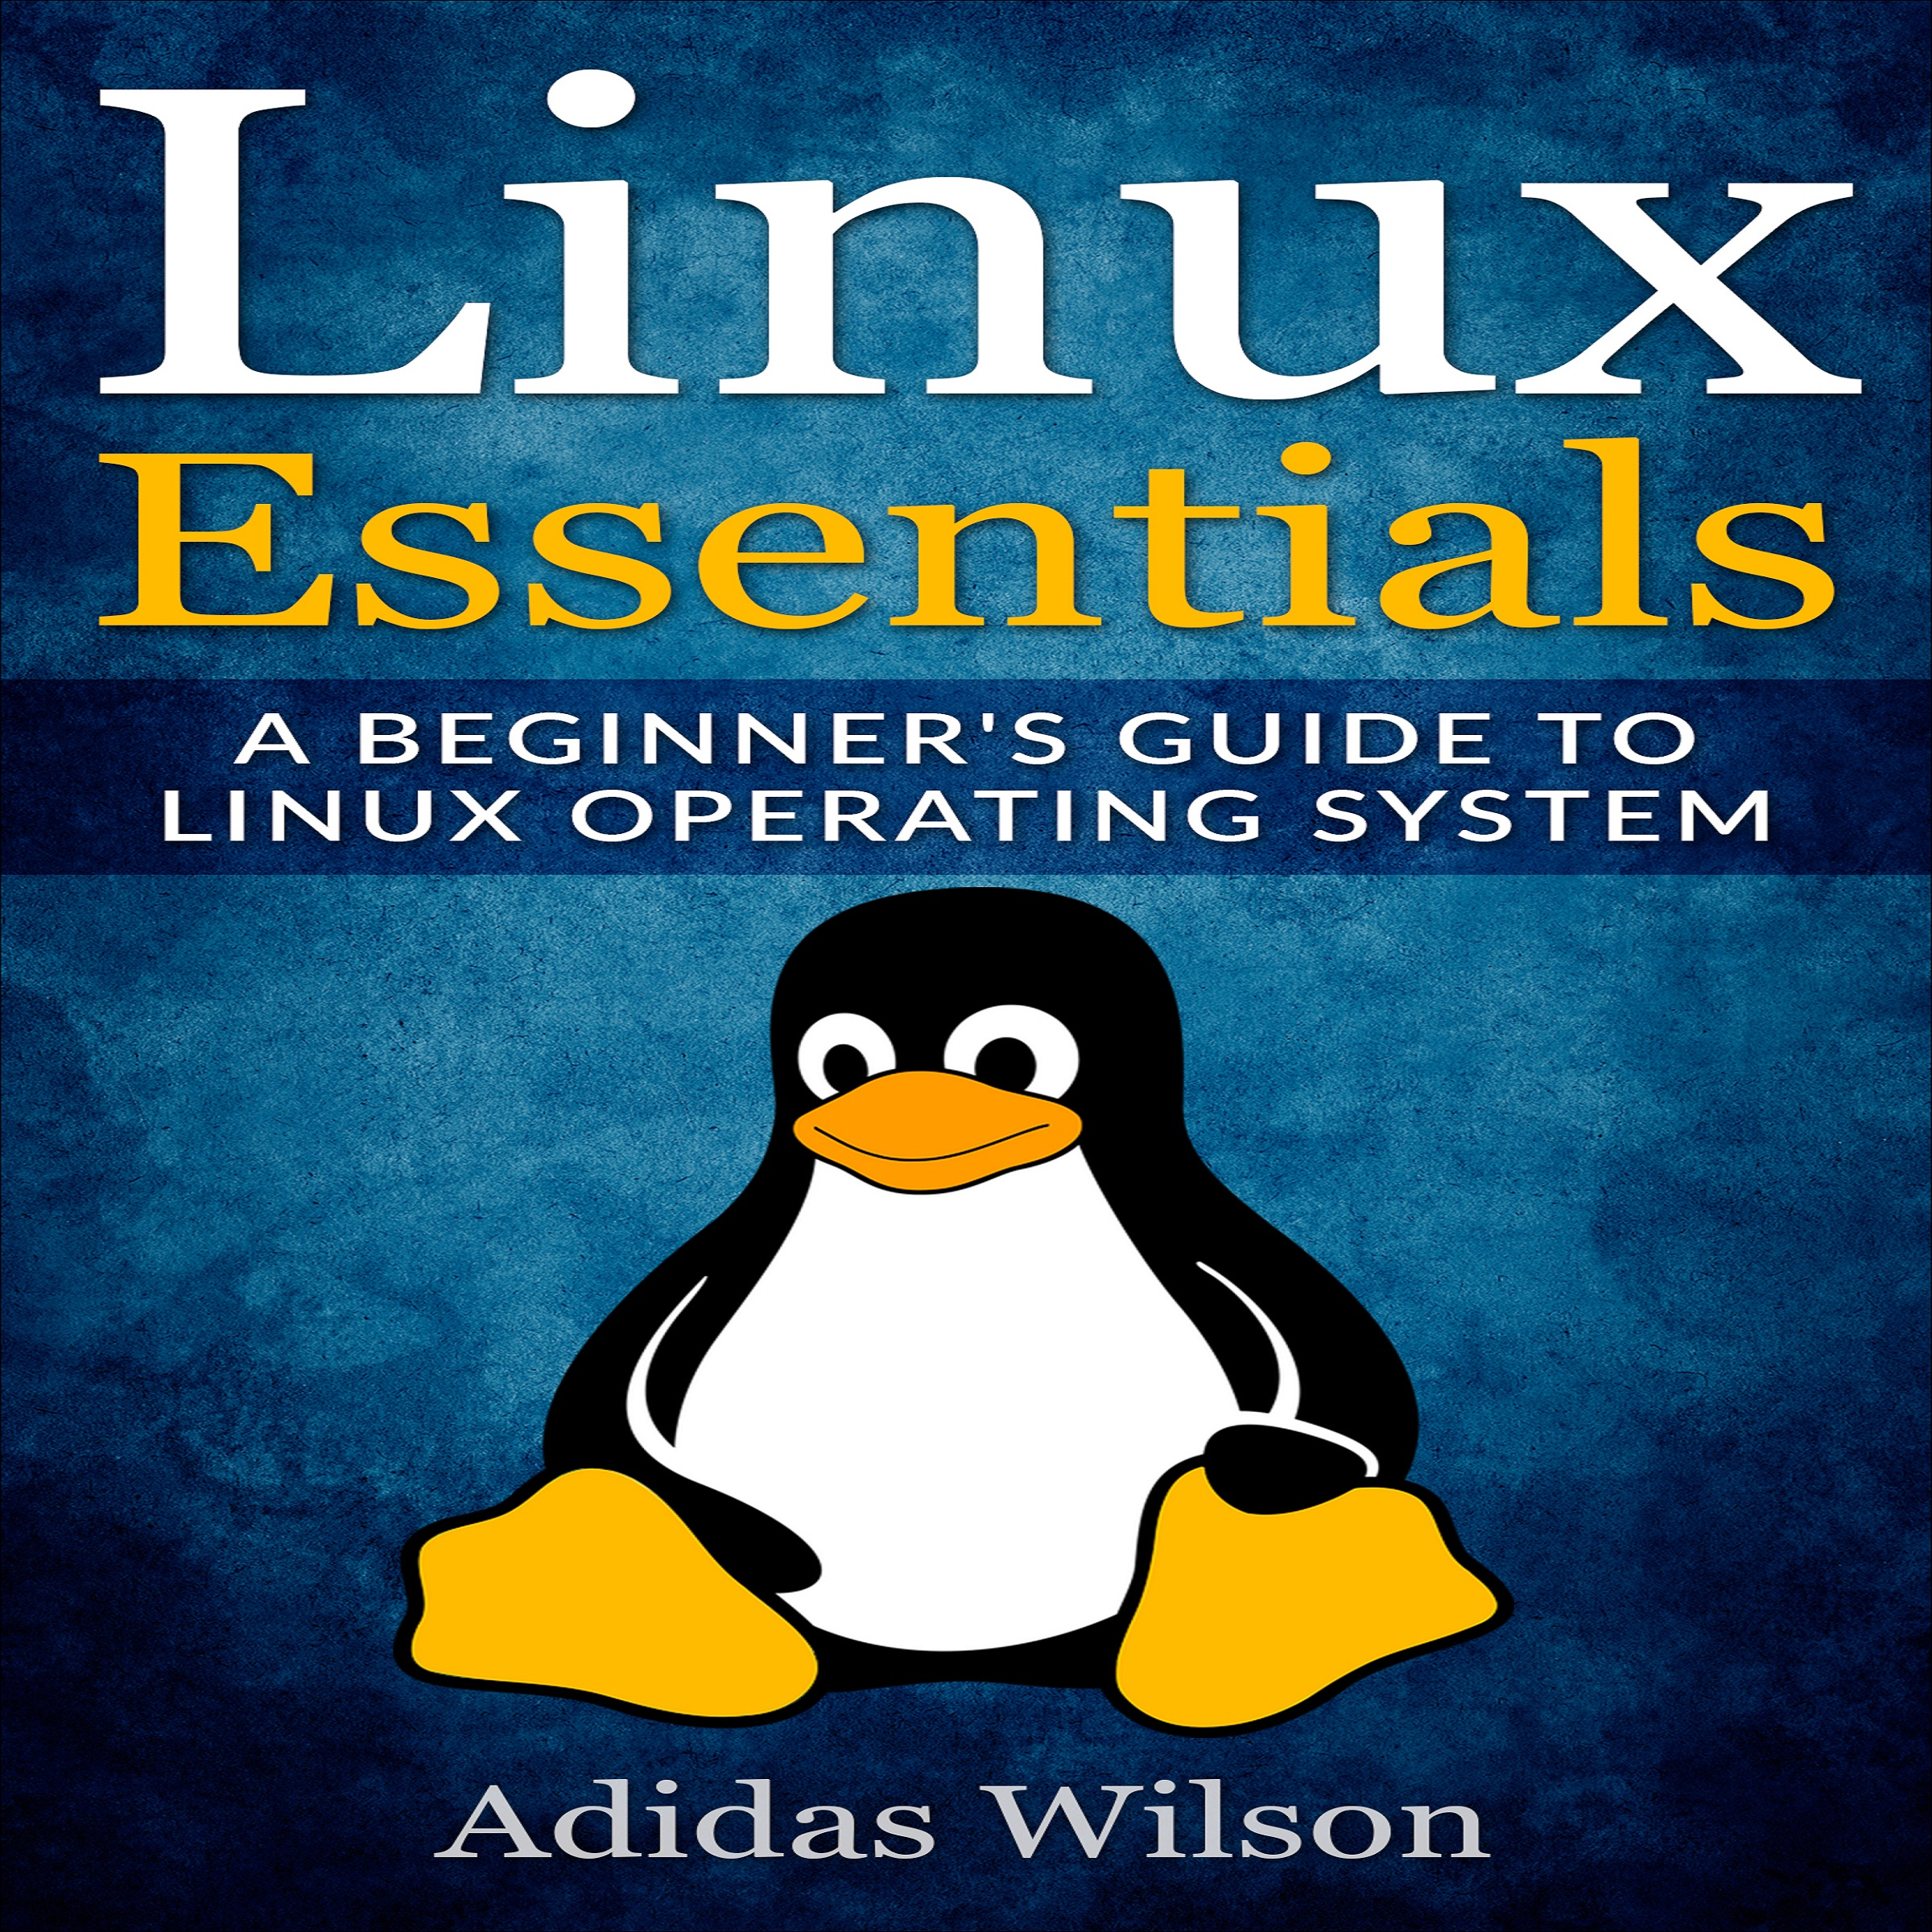 Linux essentials: a beginner's guide to linux operating system